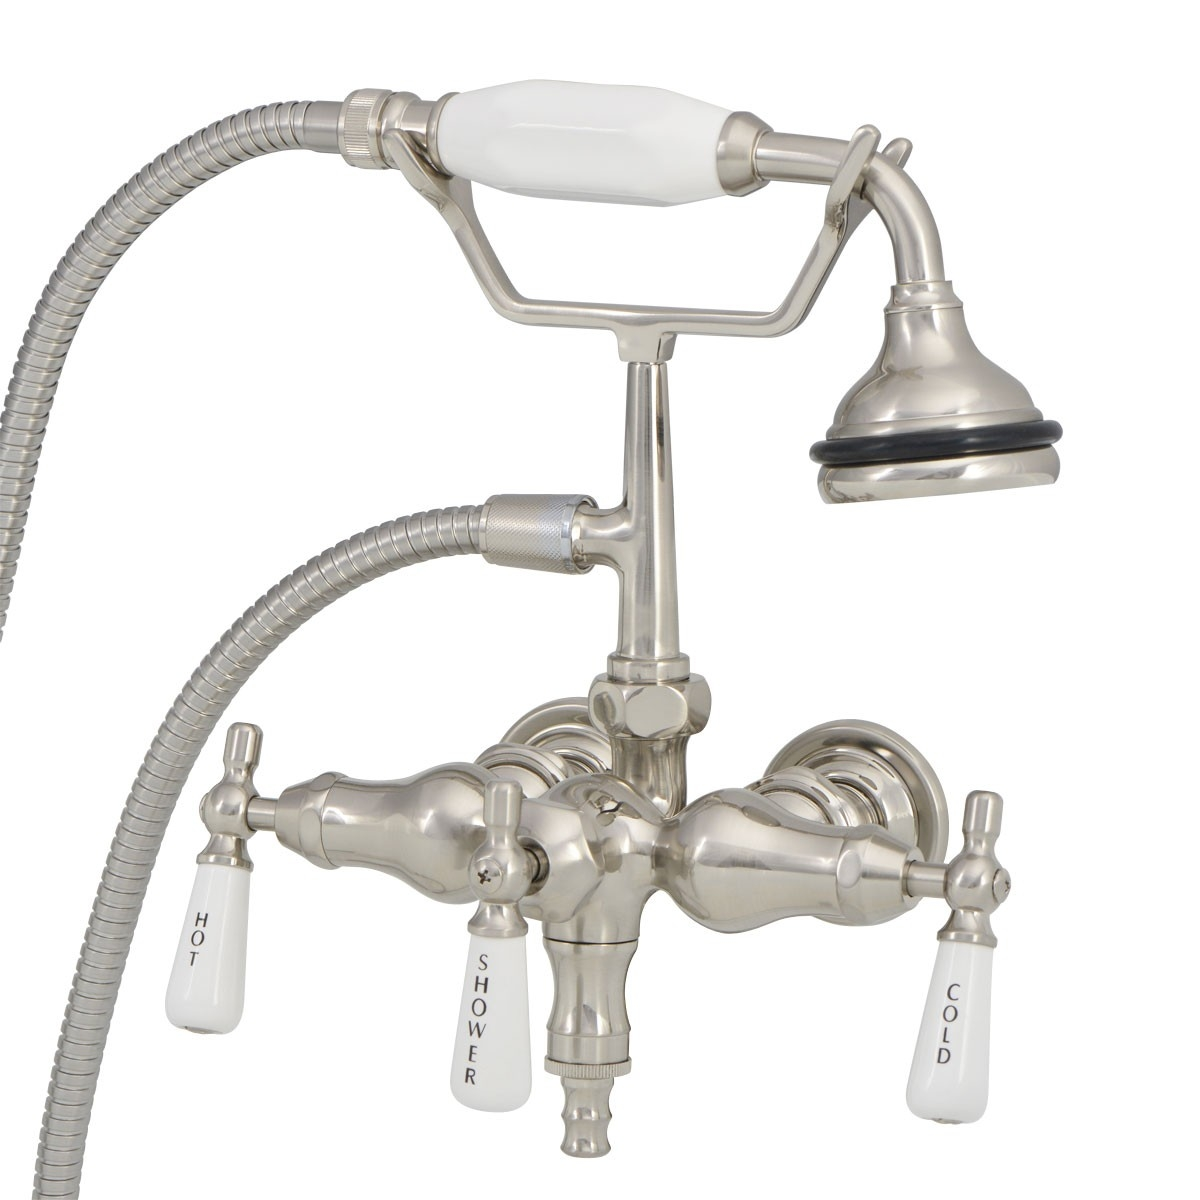 old fashioned tub faucets old fashioned tub faucets randolph morris tub faucet with handshower rm154c s vintage tub 1200 x 1200